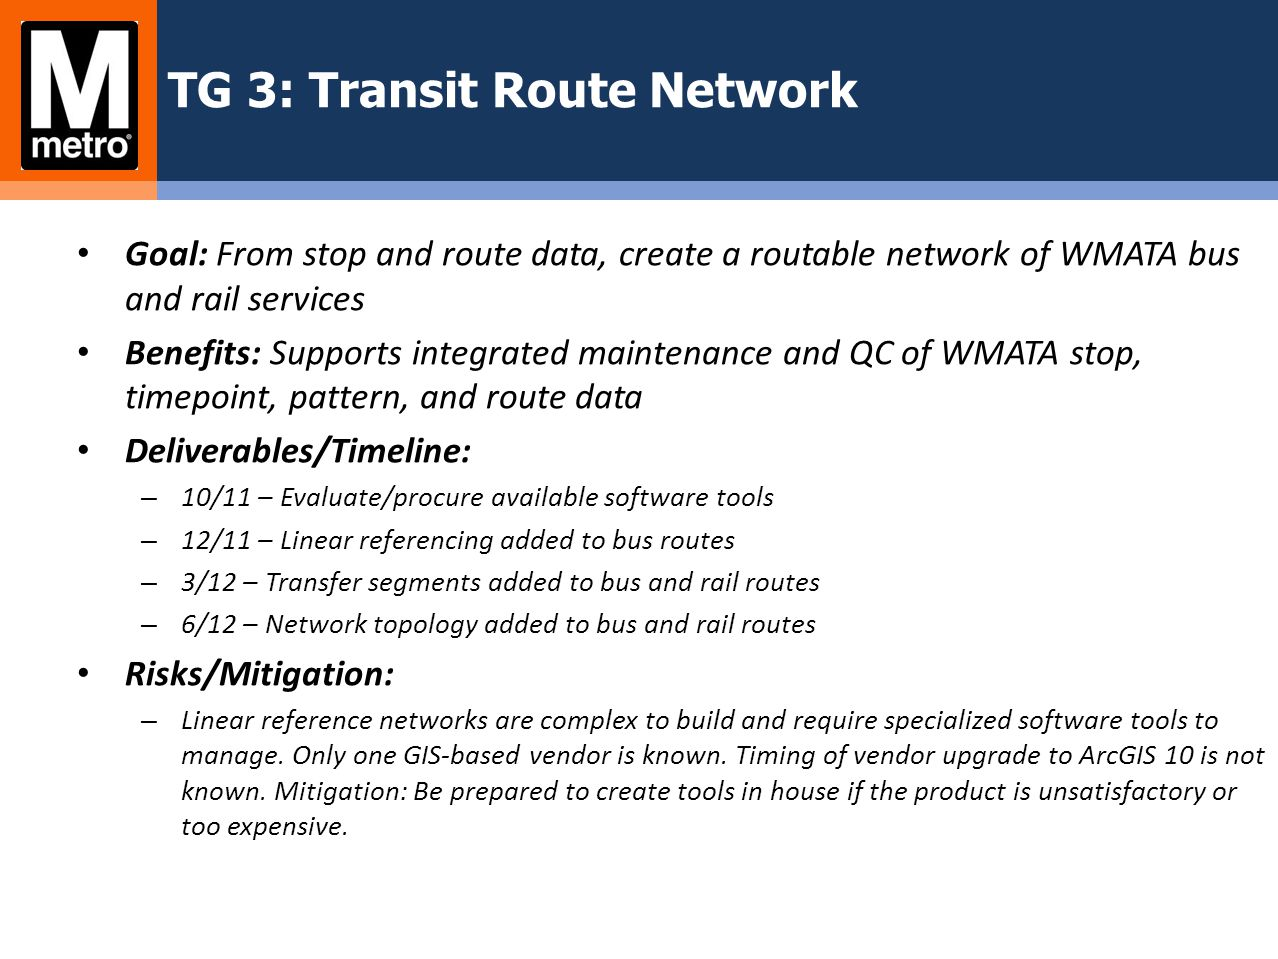 TG 3: Transit Route Network Goal: From stop and route data, create a routable network of WMATA bus and rail services Benefits: Supports integrated mai